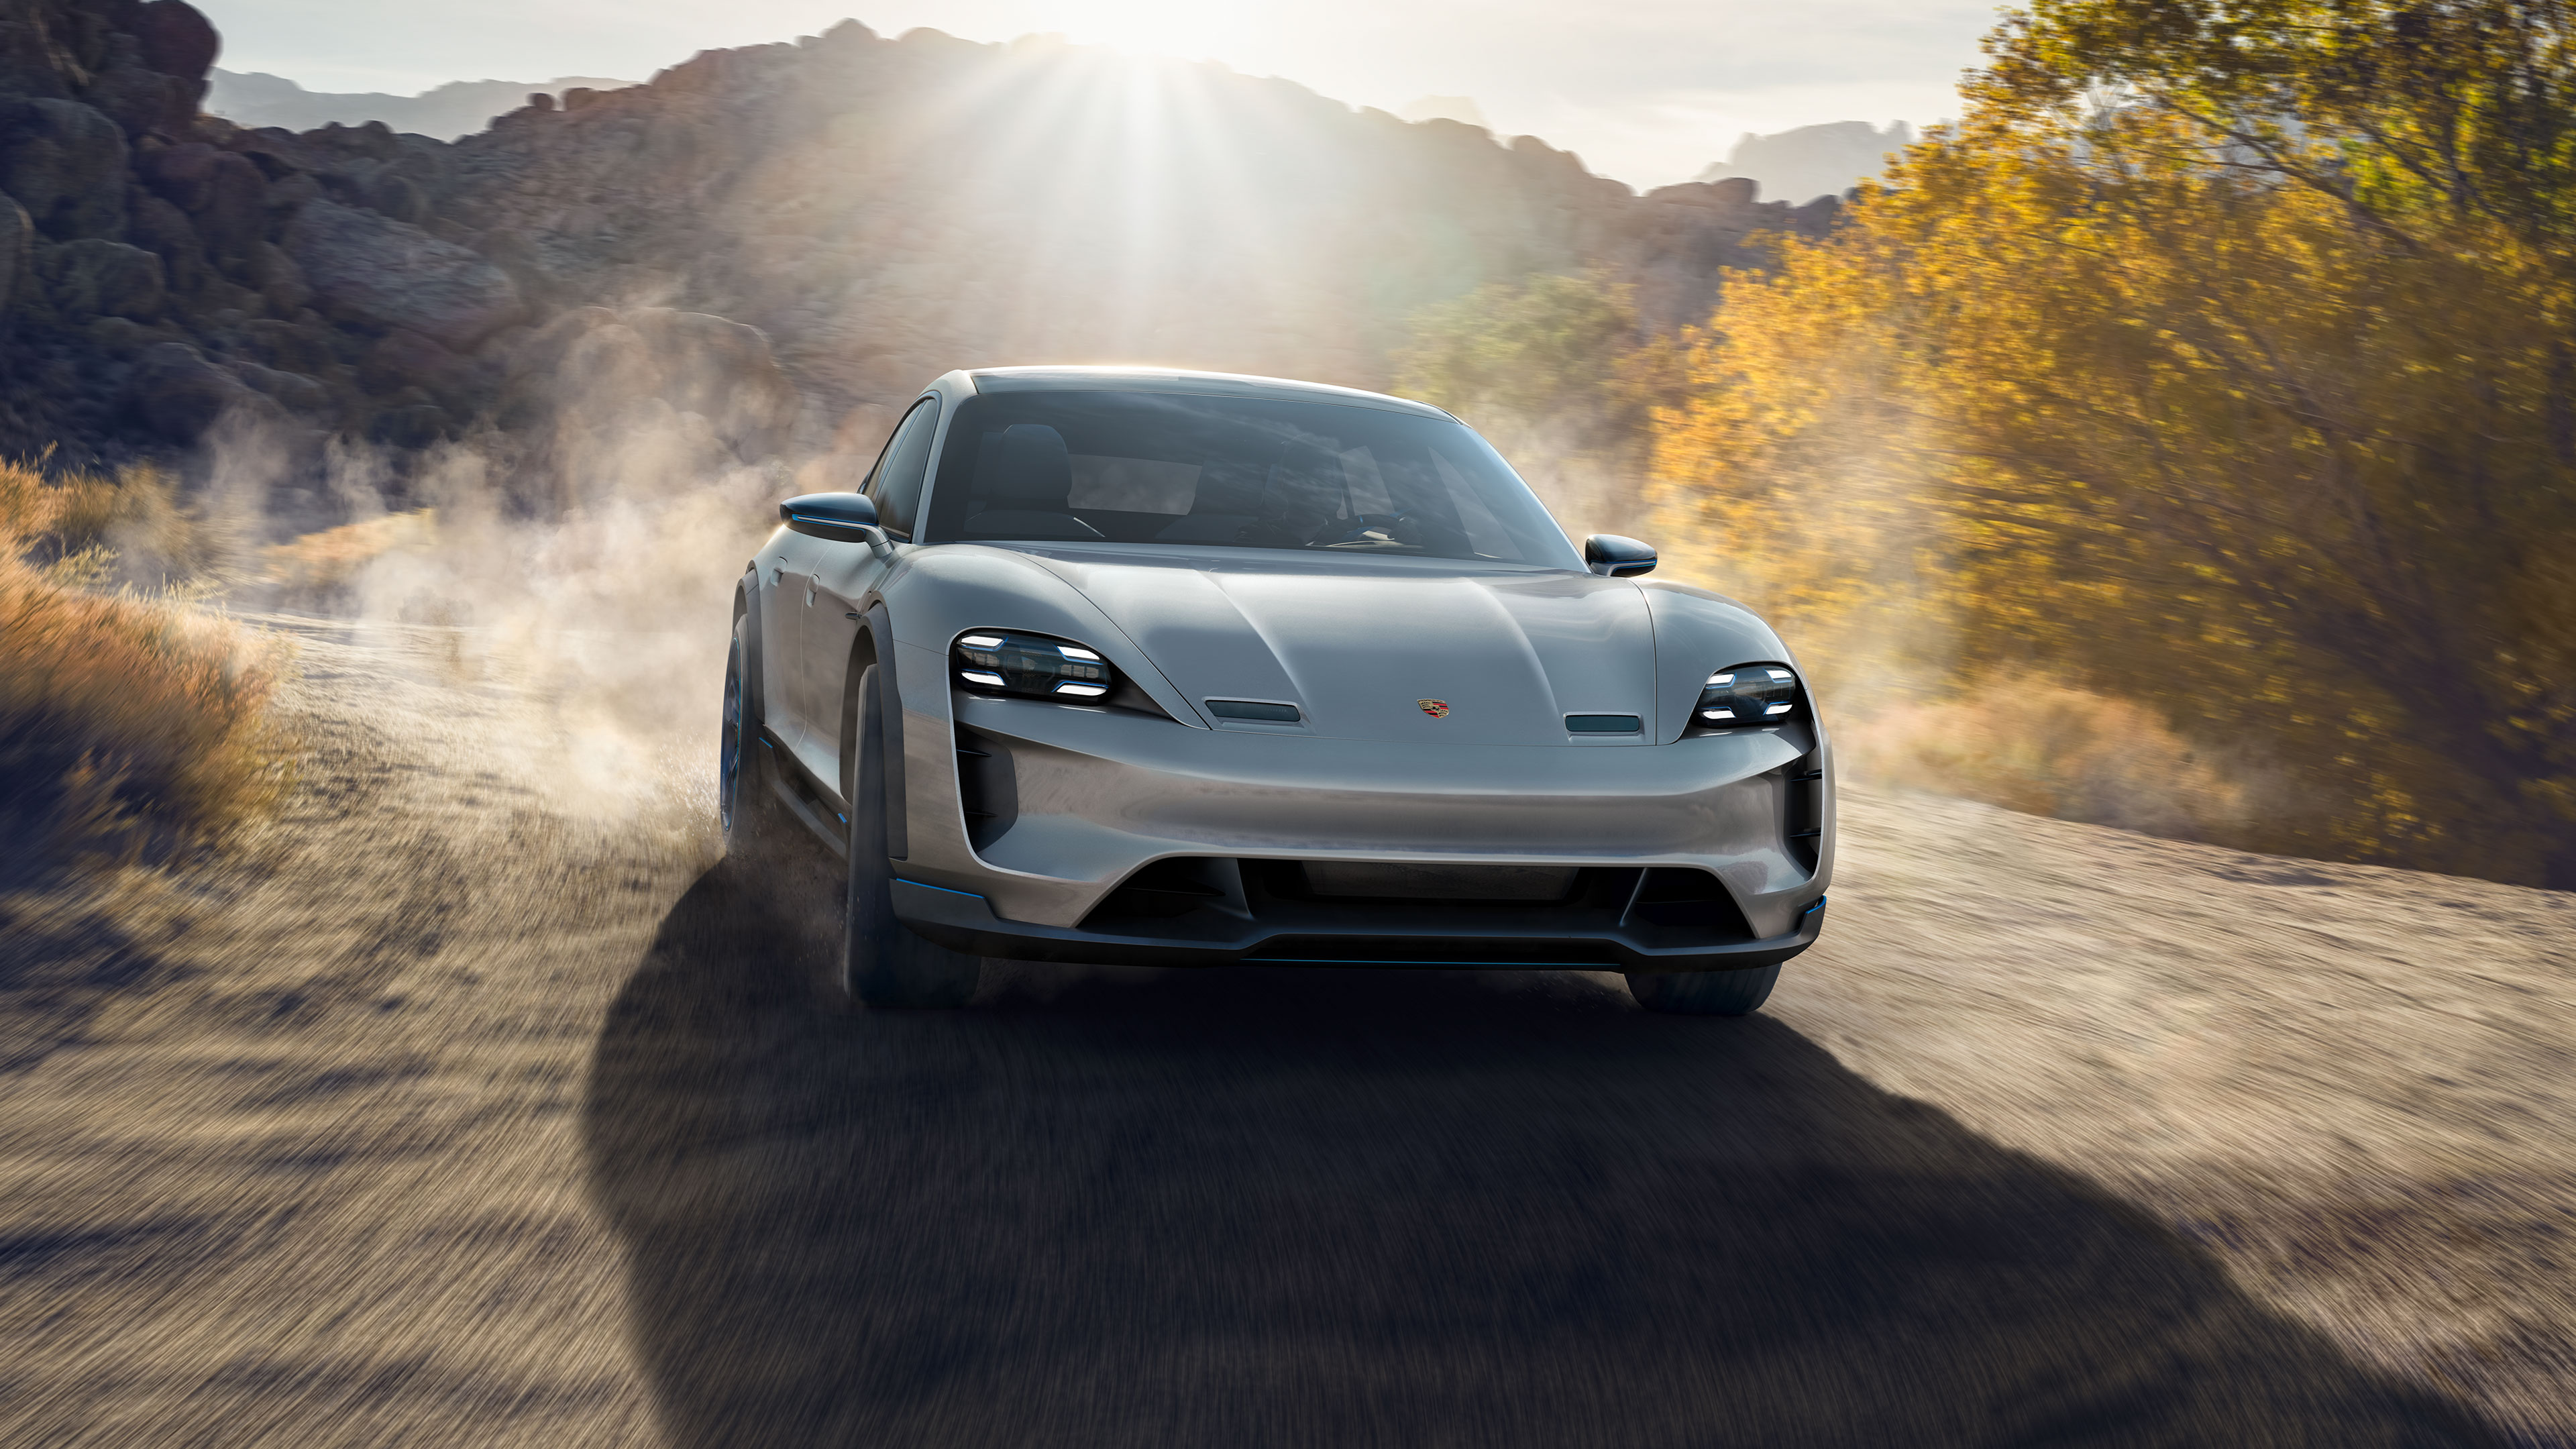 First Reviews Of Porsche Mission E Cross Turismo Are In And They Glowing